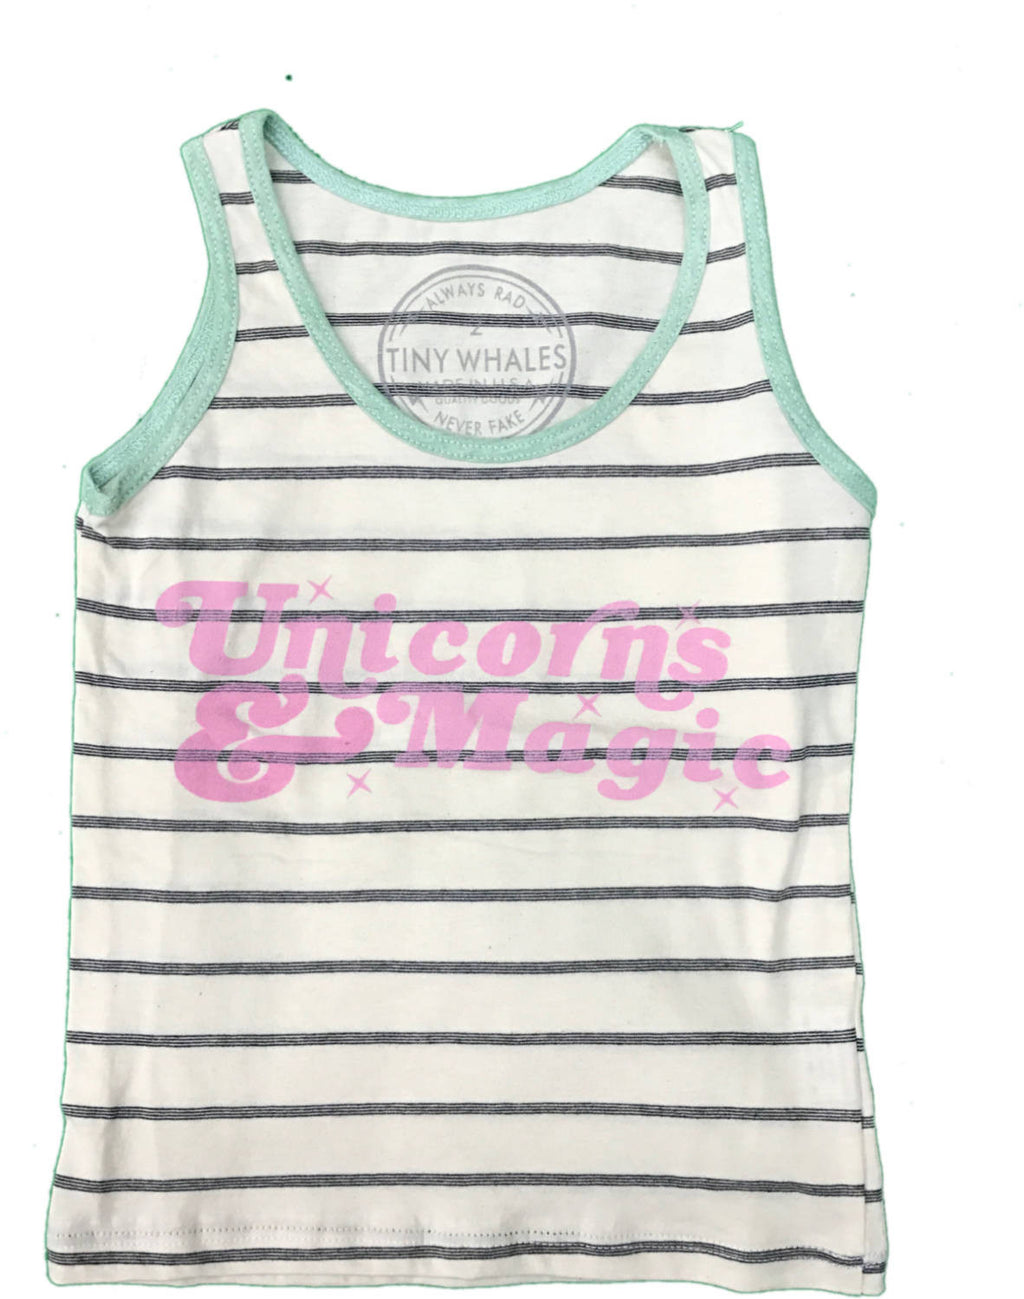 tiny whales unicorns and magic tank top tee girls boys unisex tank